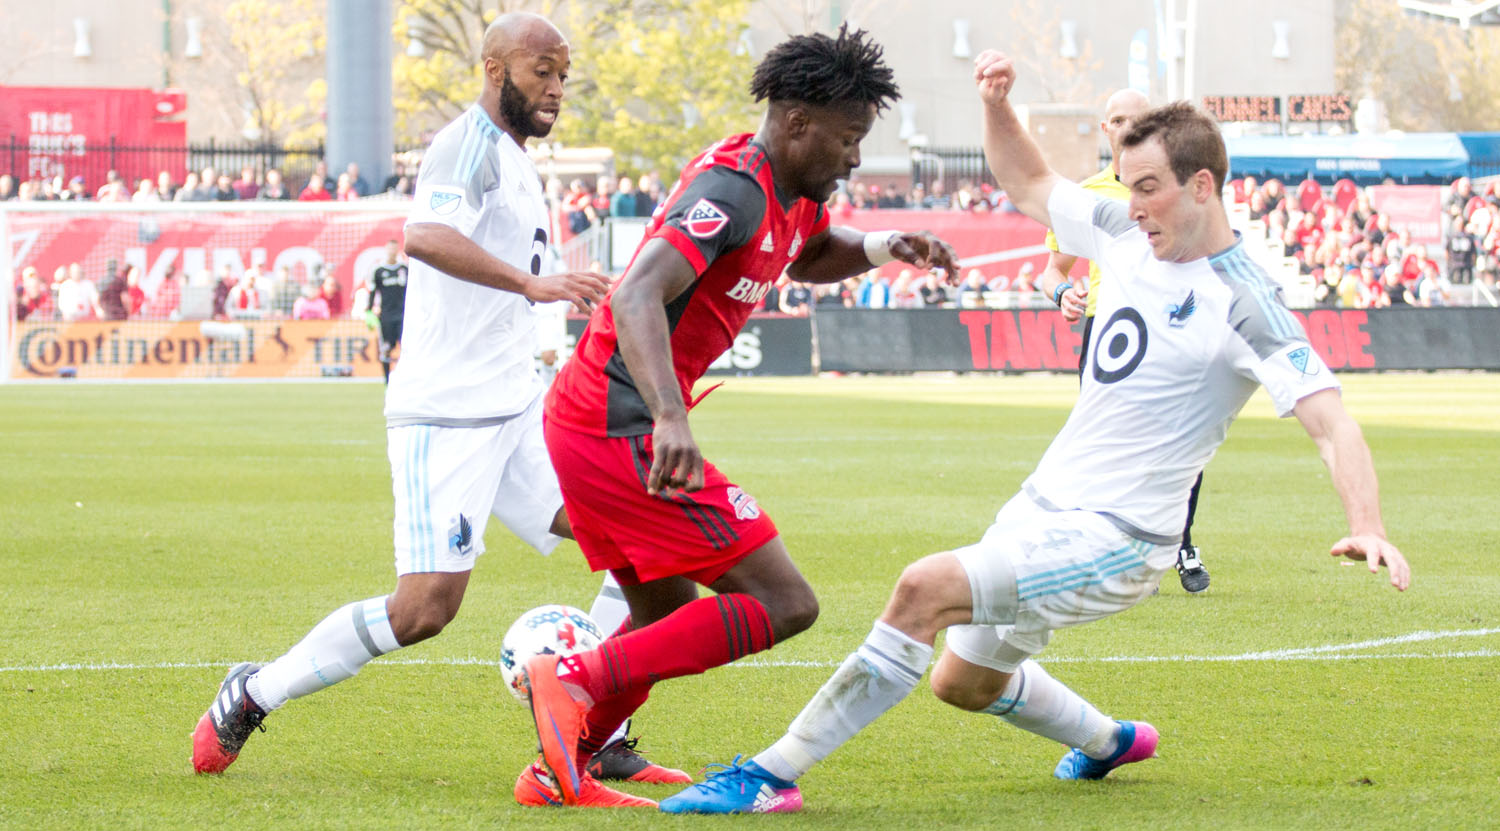 Tossaint Ricketts playing the ball around two Minnesota United FC players at BMO Field. Photo by Dennis Marciniak.